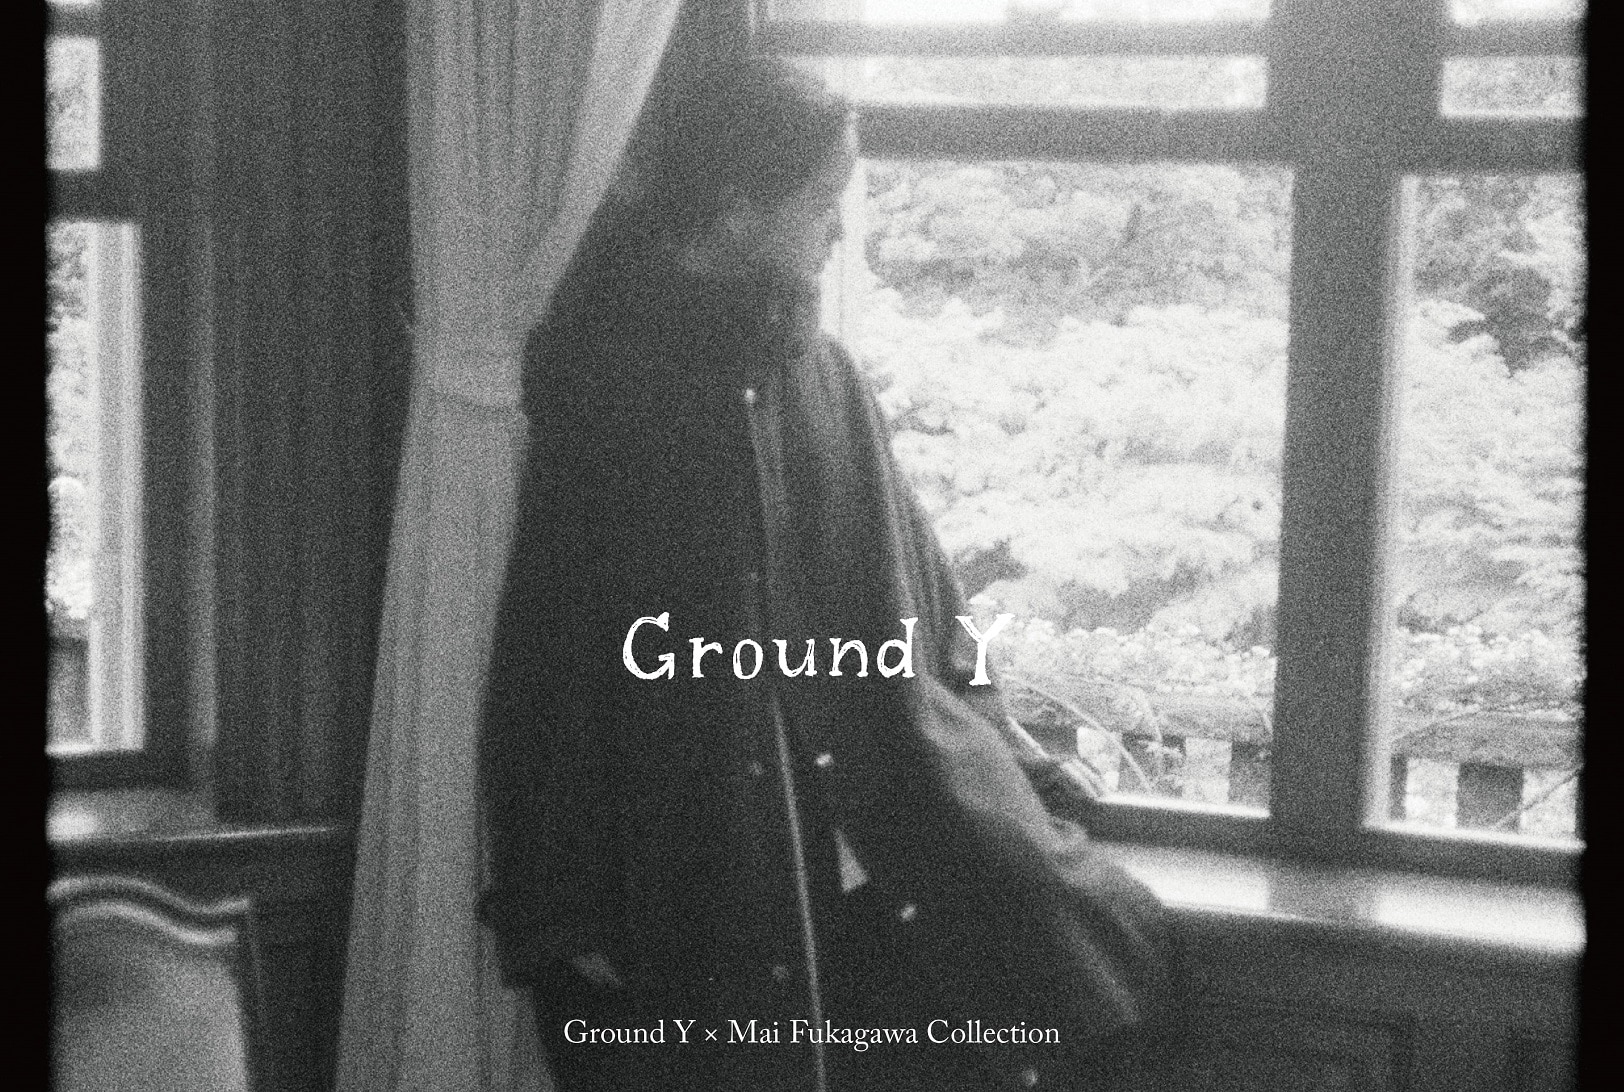 Ground Y × Mai Fukagawa T-SHIRT COLLECTION